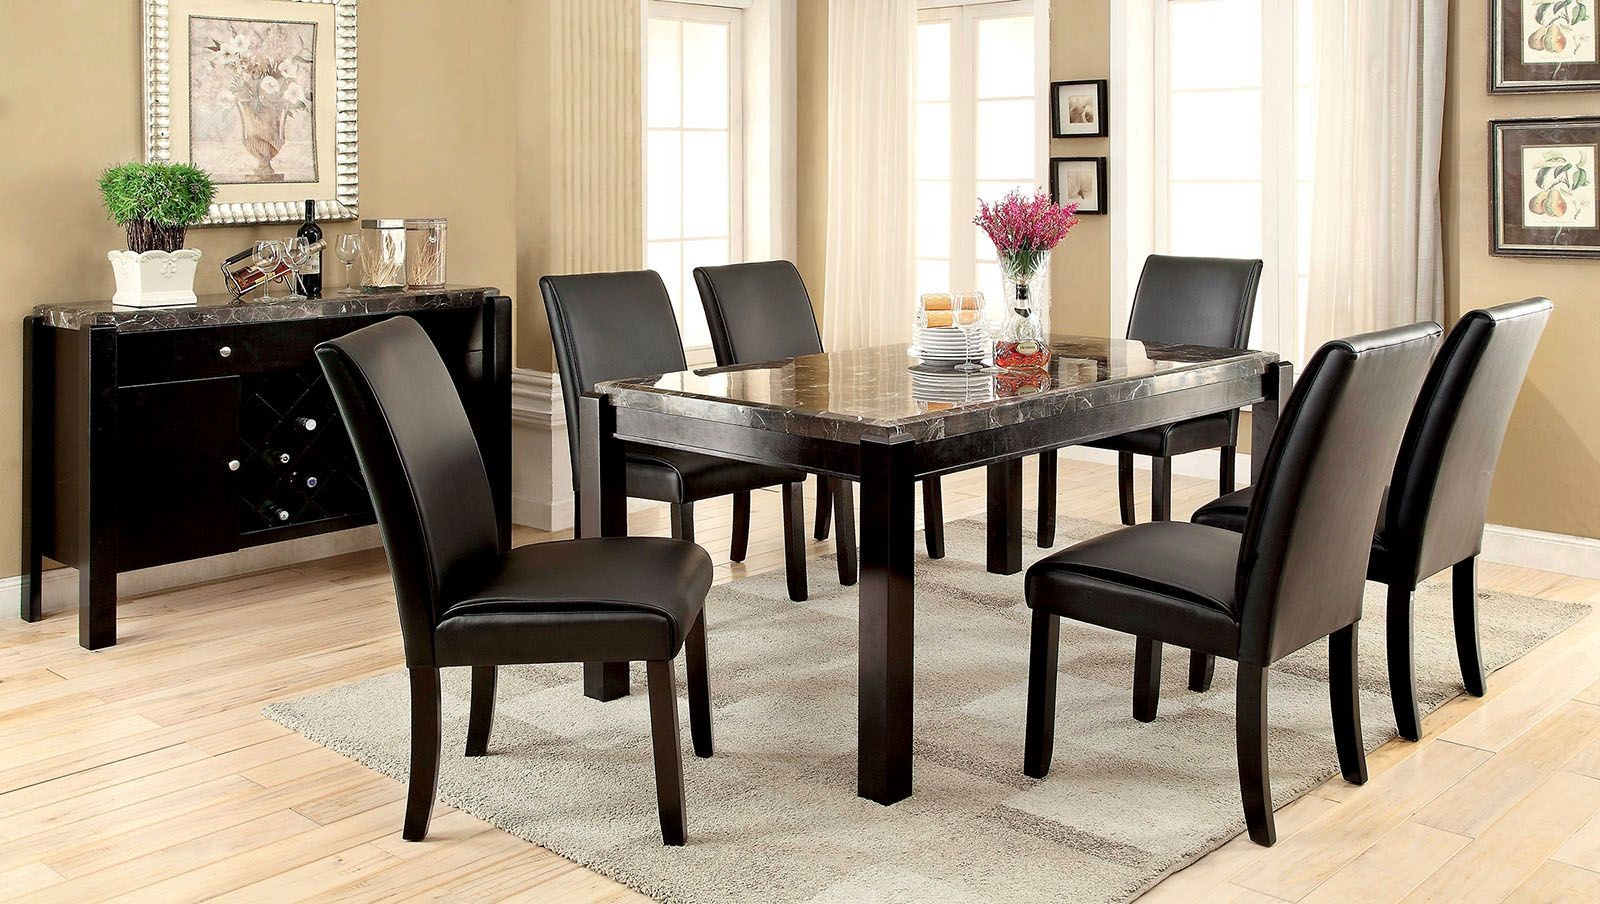 Gladstone I Gray Marble Top Dining Room Set From Furniture